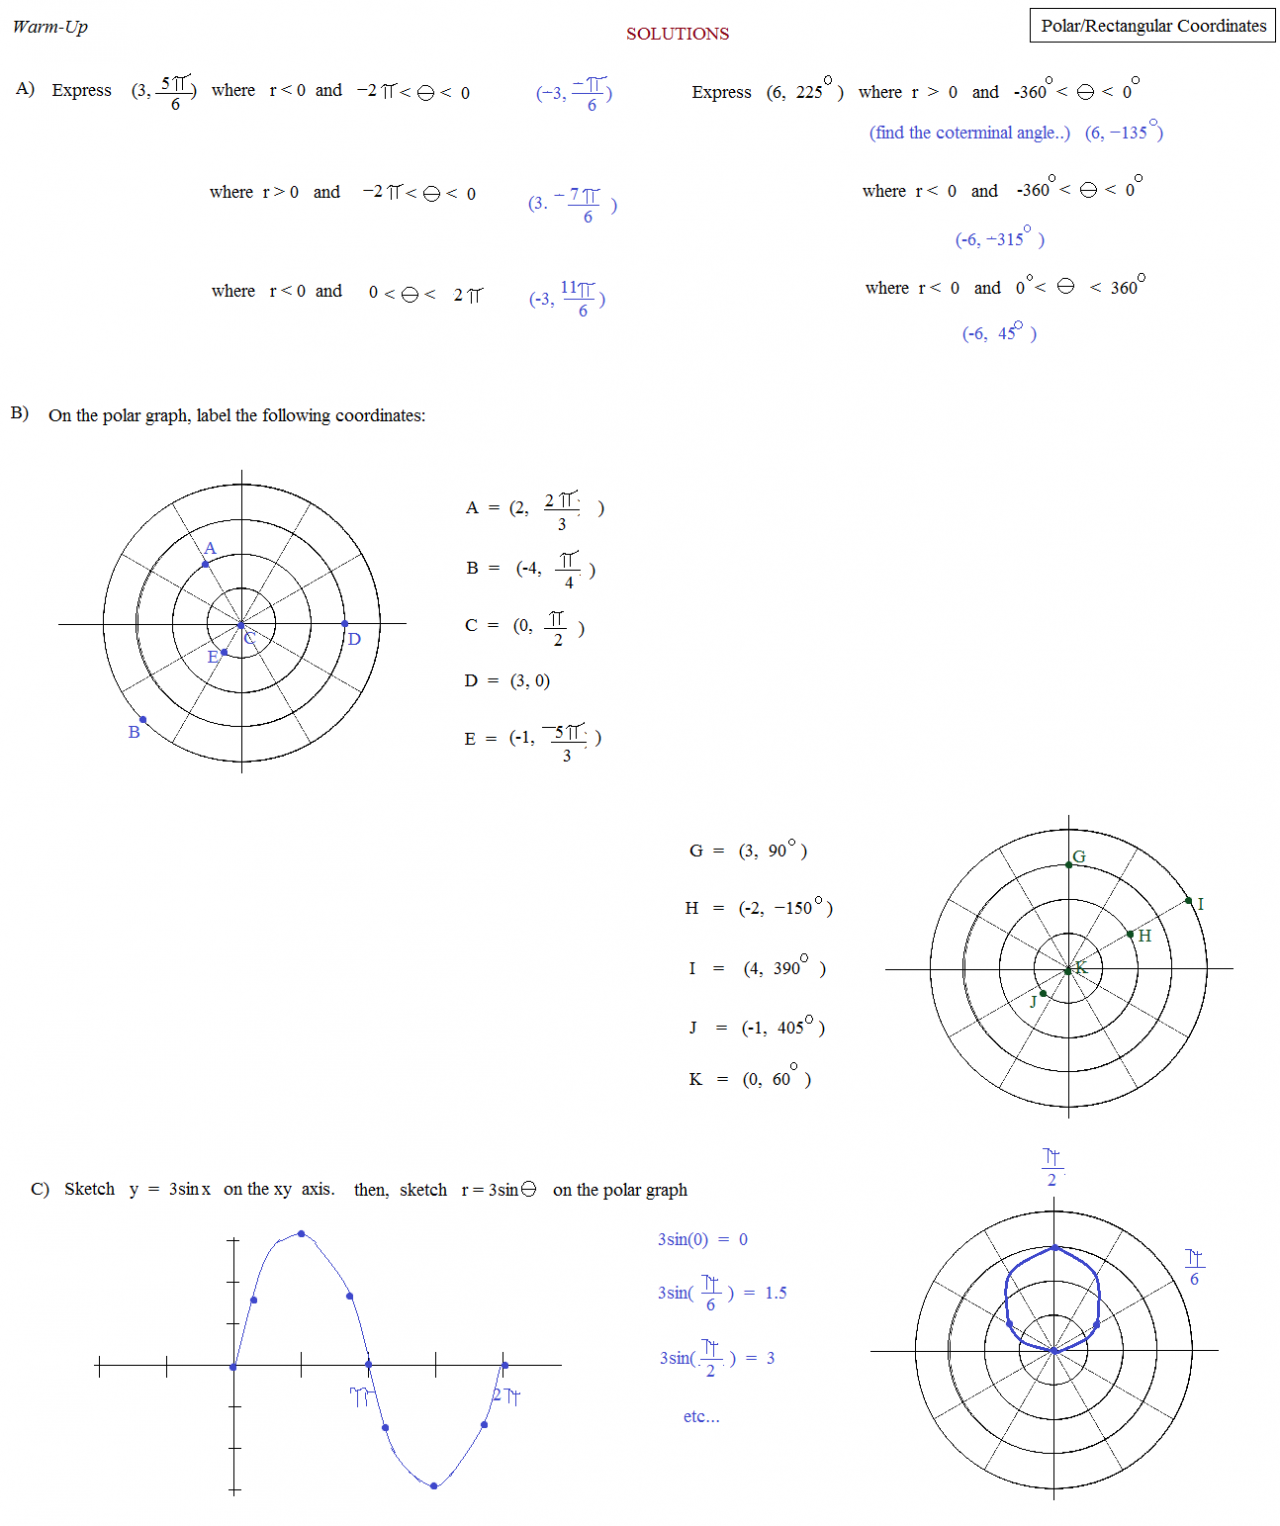 Worksheets Math Warm Up Worksheets 9th grade math worksheets and answers writing fractions worksheet with geometry trig polar rectangle coordinates 2 warm up